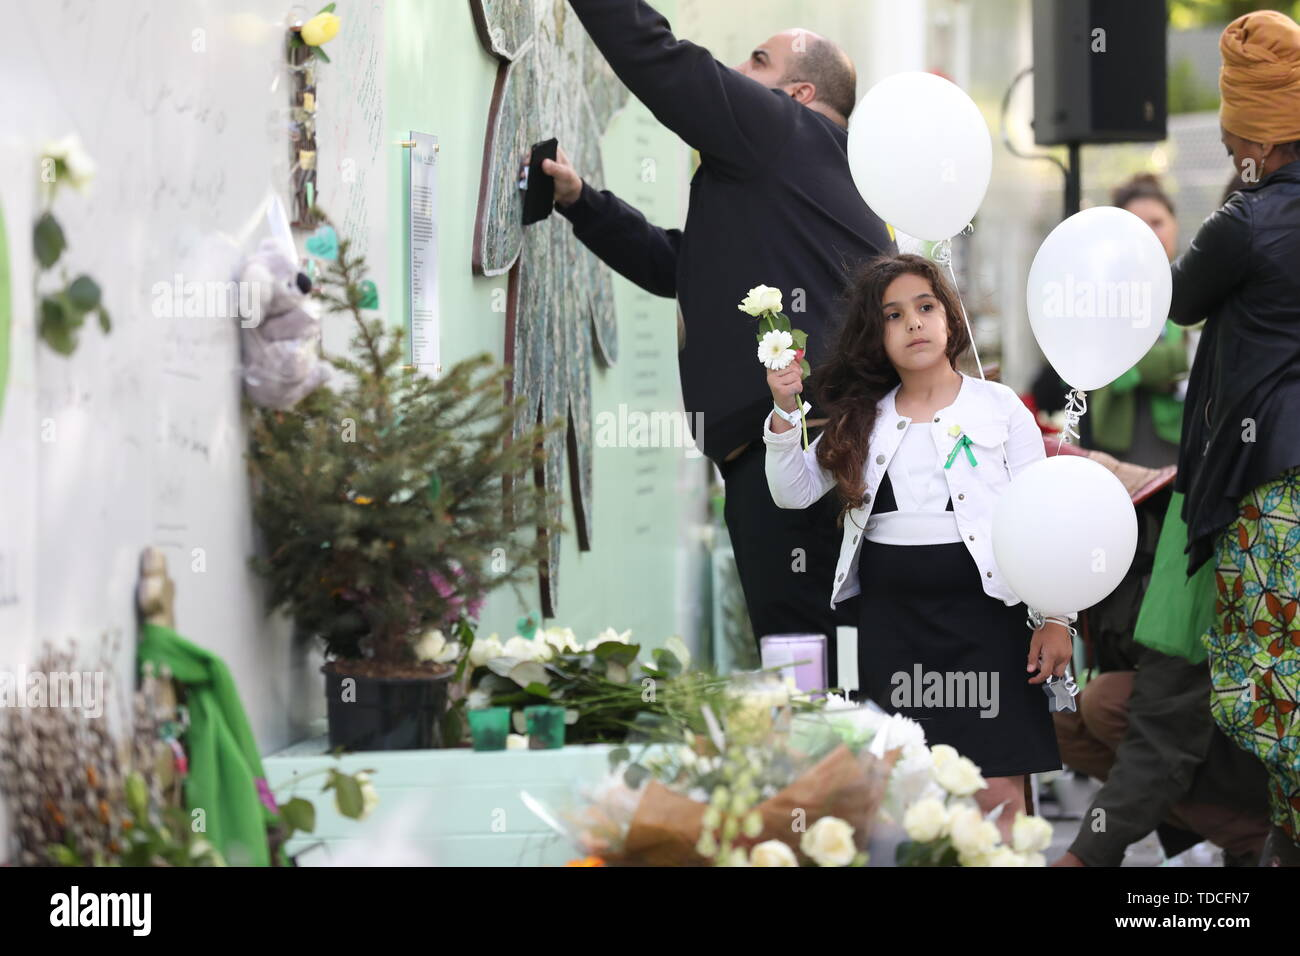 Family and friends of the 72 people who lost their lives in the Grenfell Tower block lay flowers and write messages during a wreath laying ceremony outside Grenfell Tower, London, to mark the two-year anniversary. - Stock Image